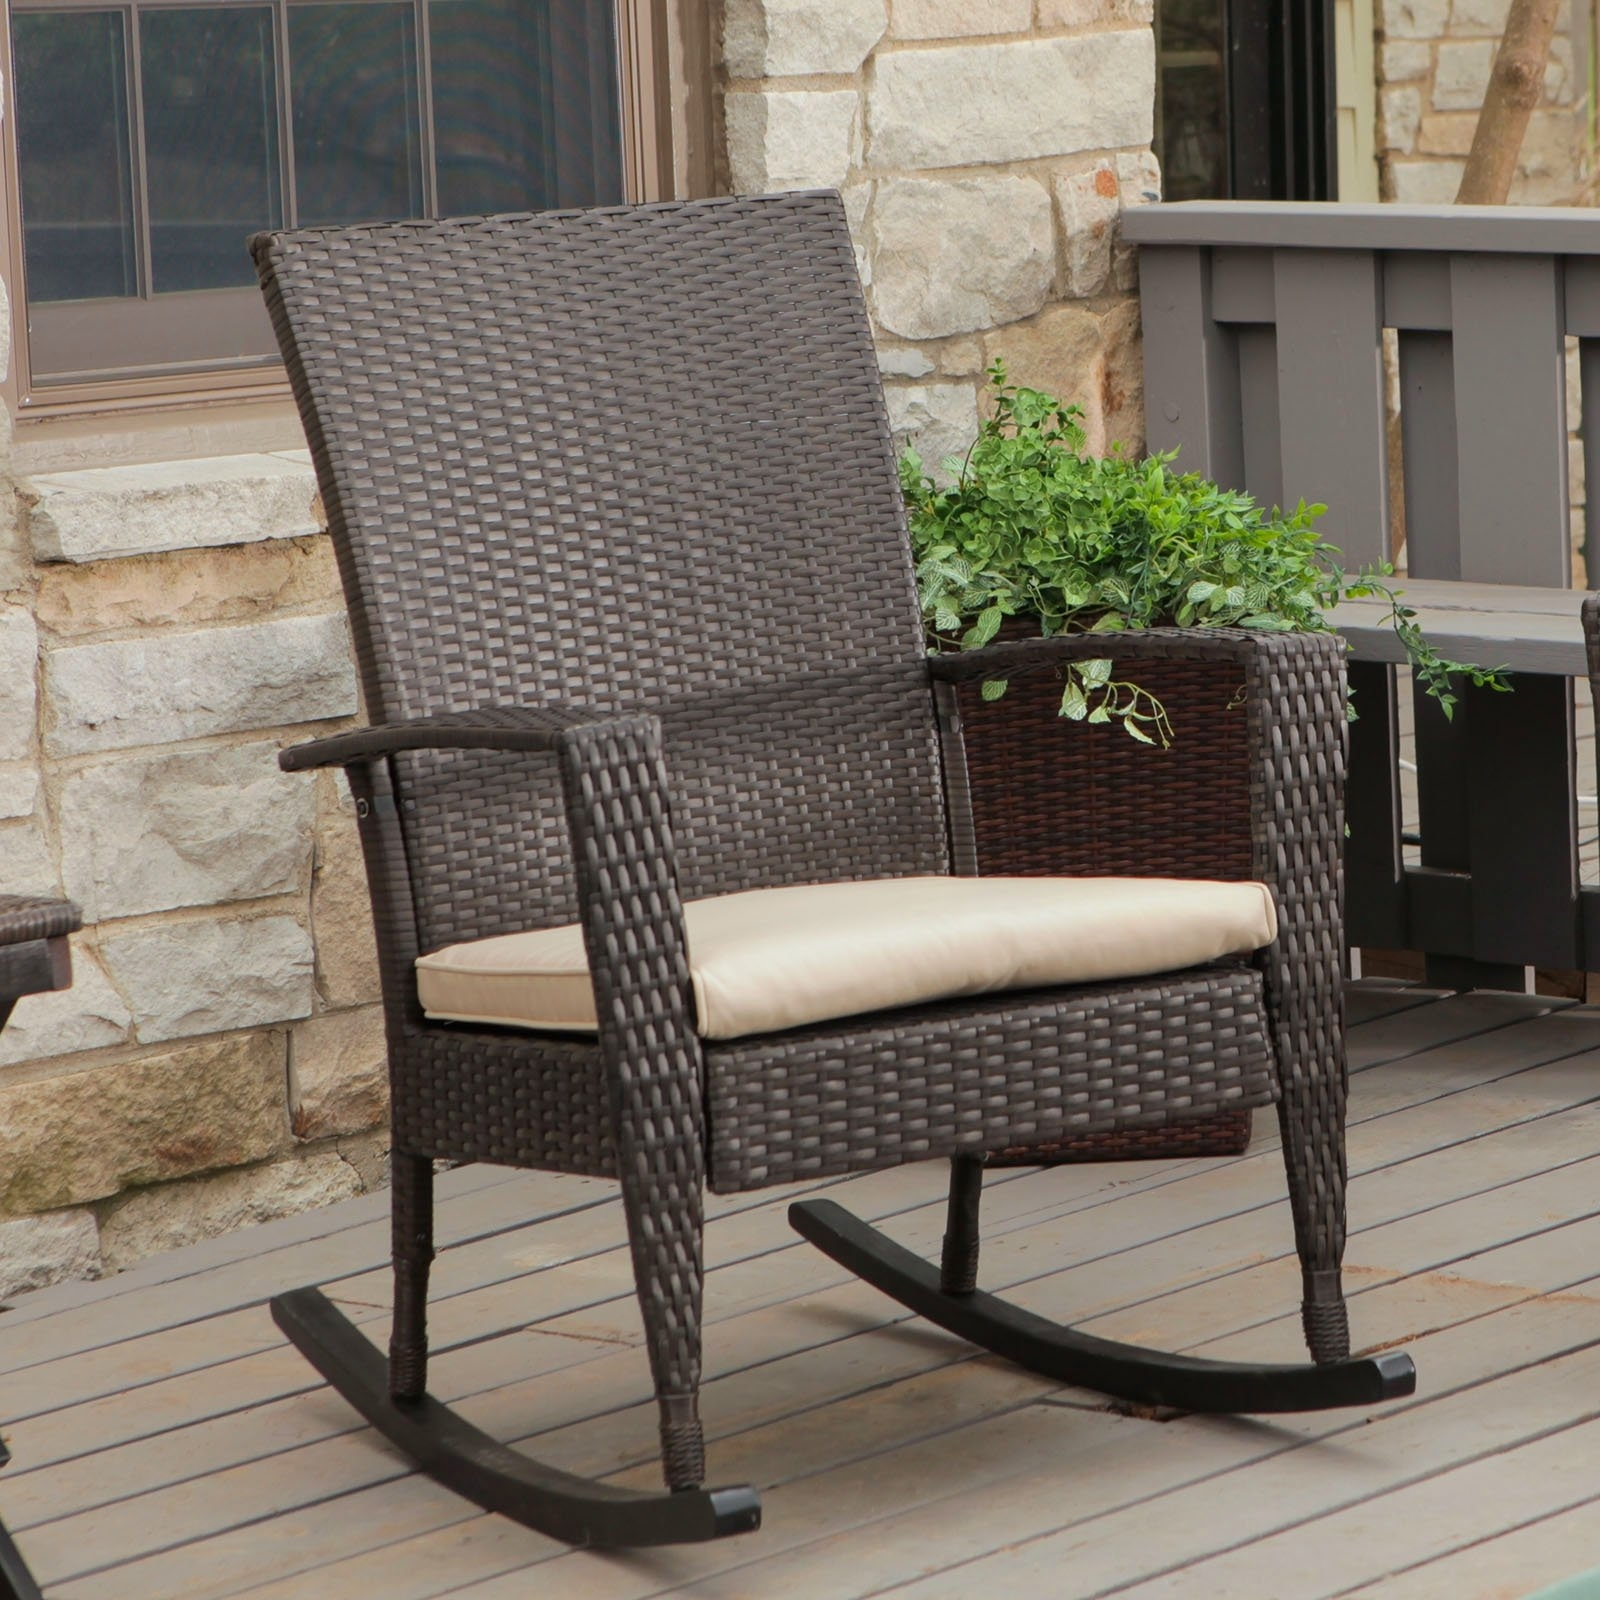 Outdoor Wicker Rocking Chairs Design — Wilson Home Ideas : How Oil Regarding Patio Furniture Rocking Benches (#12 of 15)